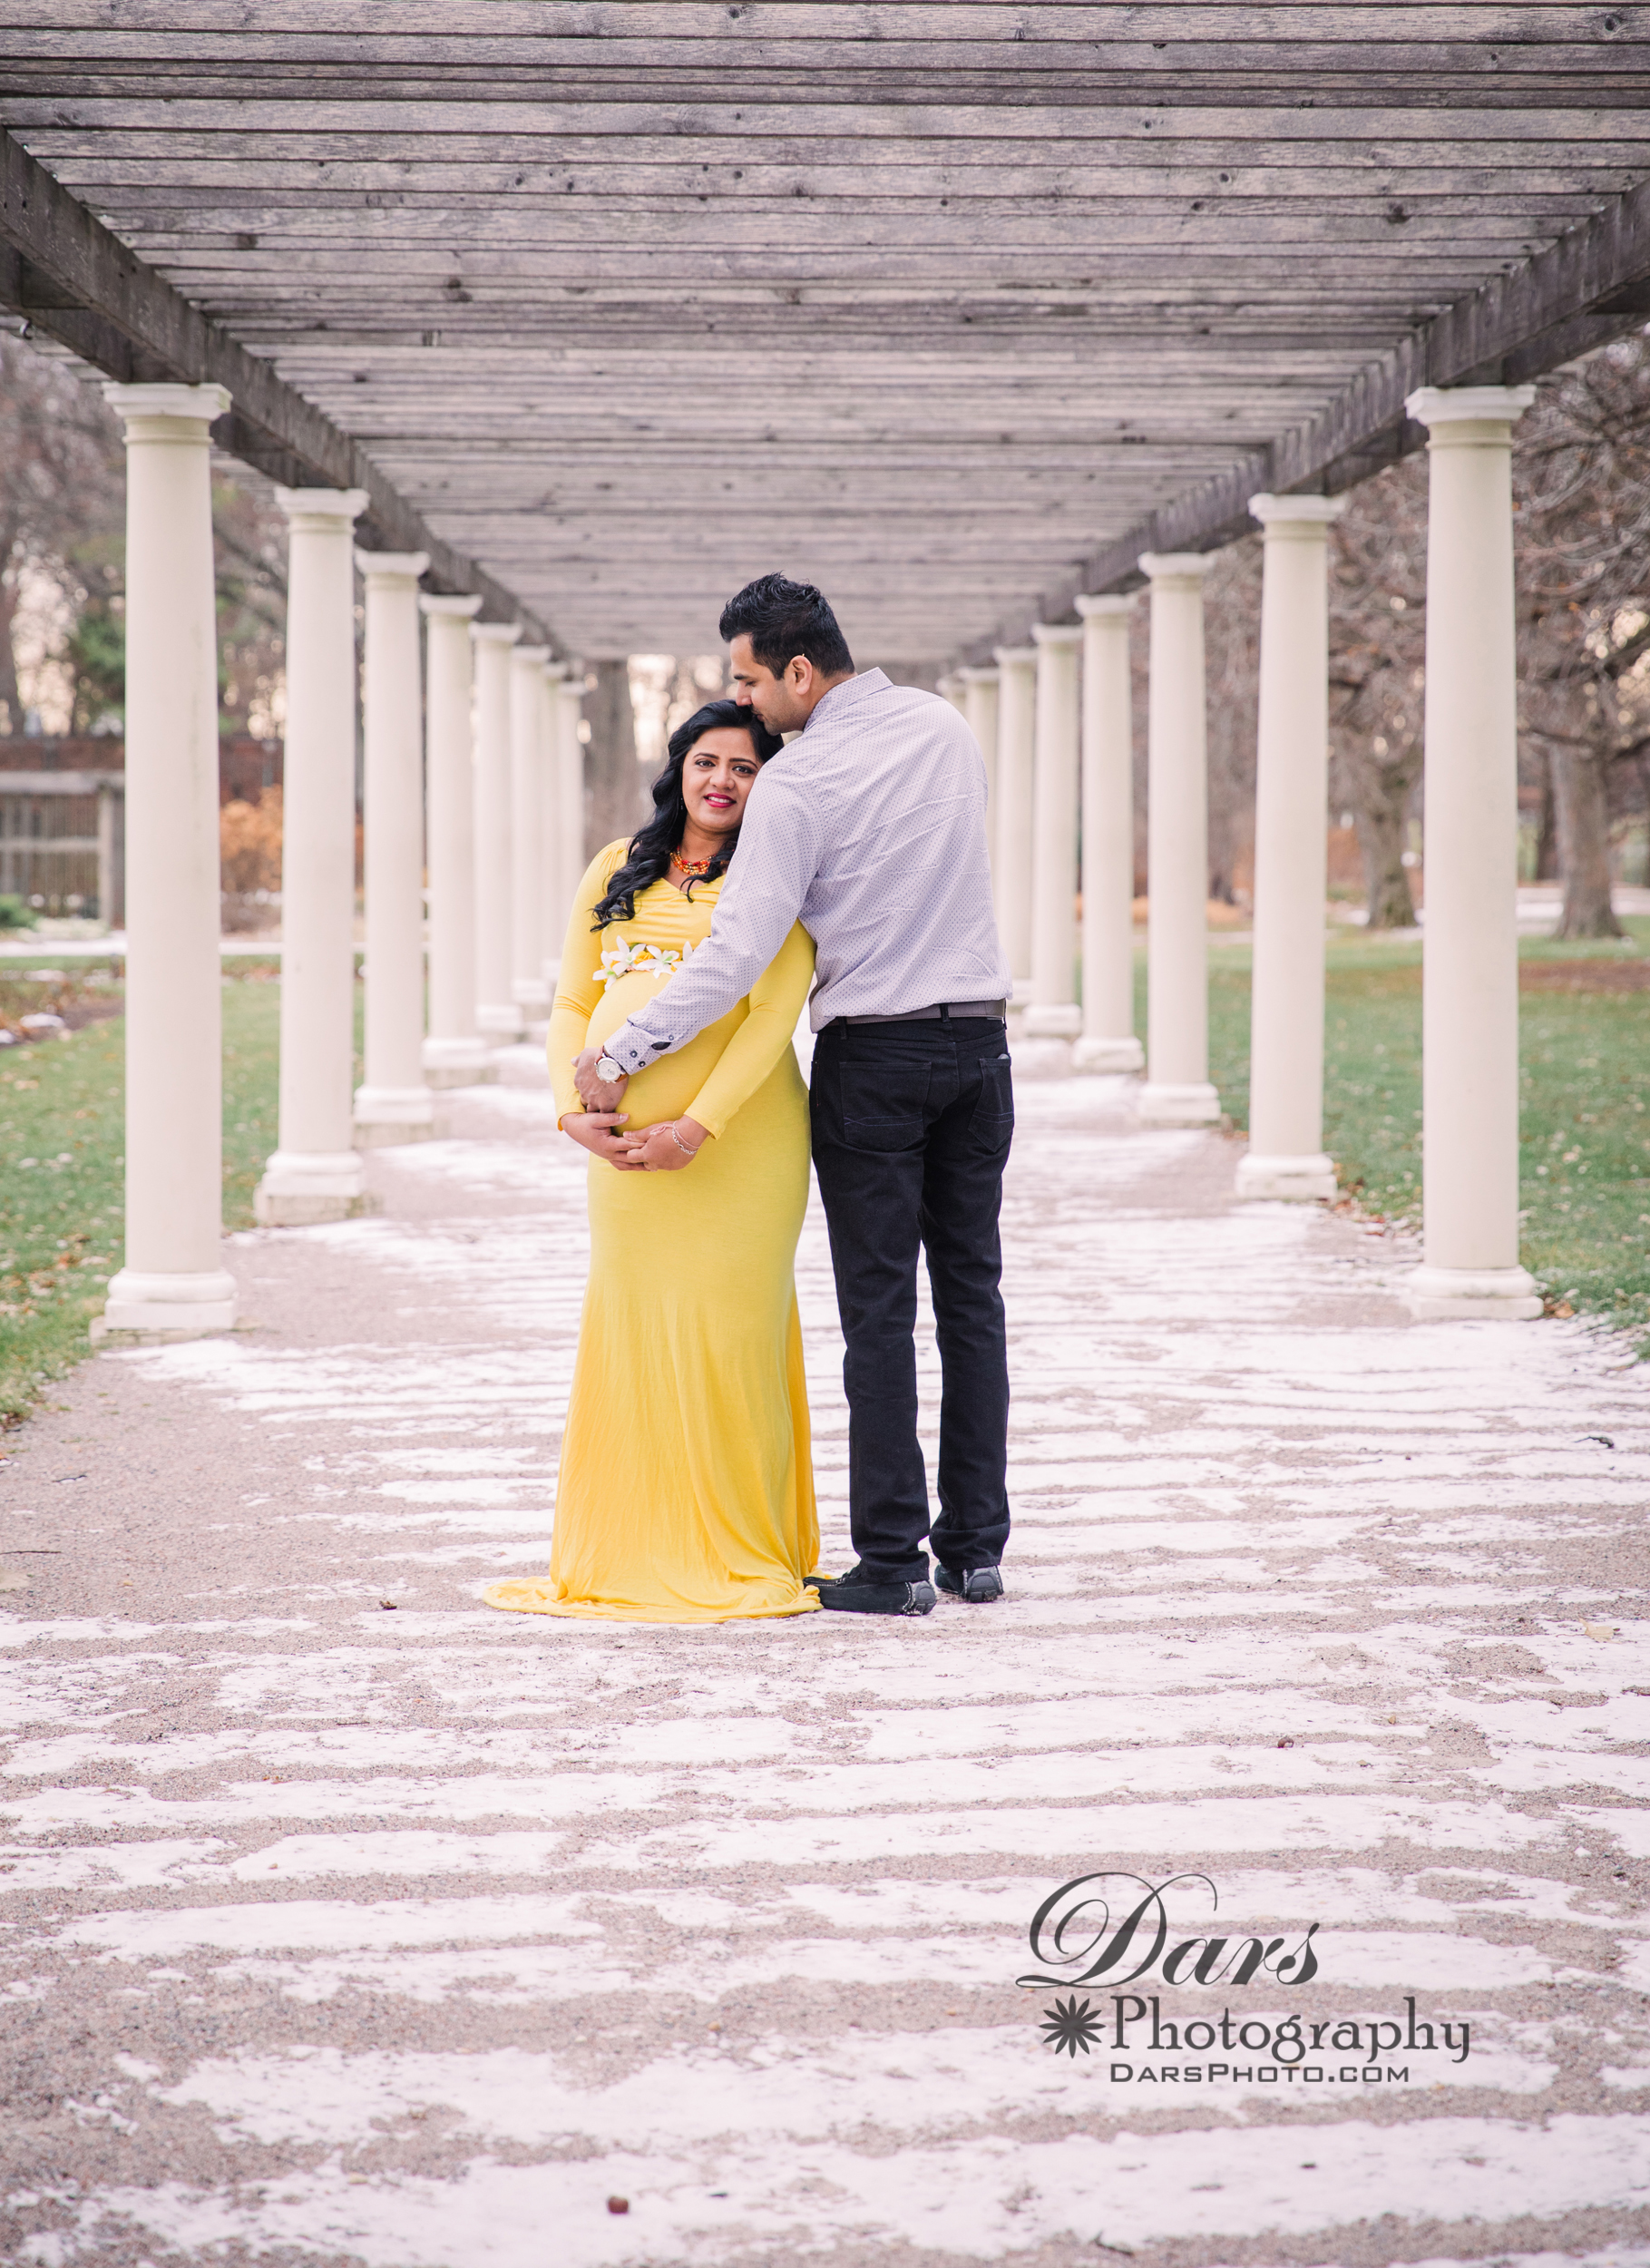 SIDDHI'S MATERNITY PHOTO SESSION